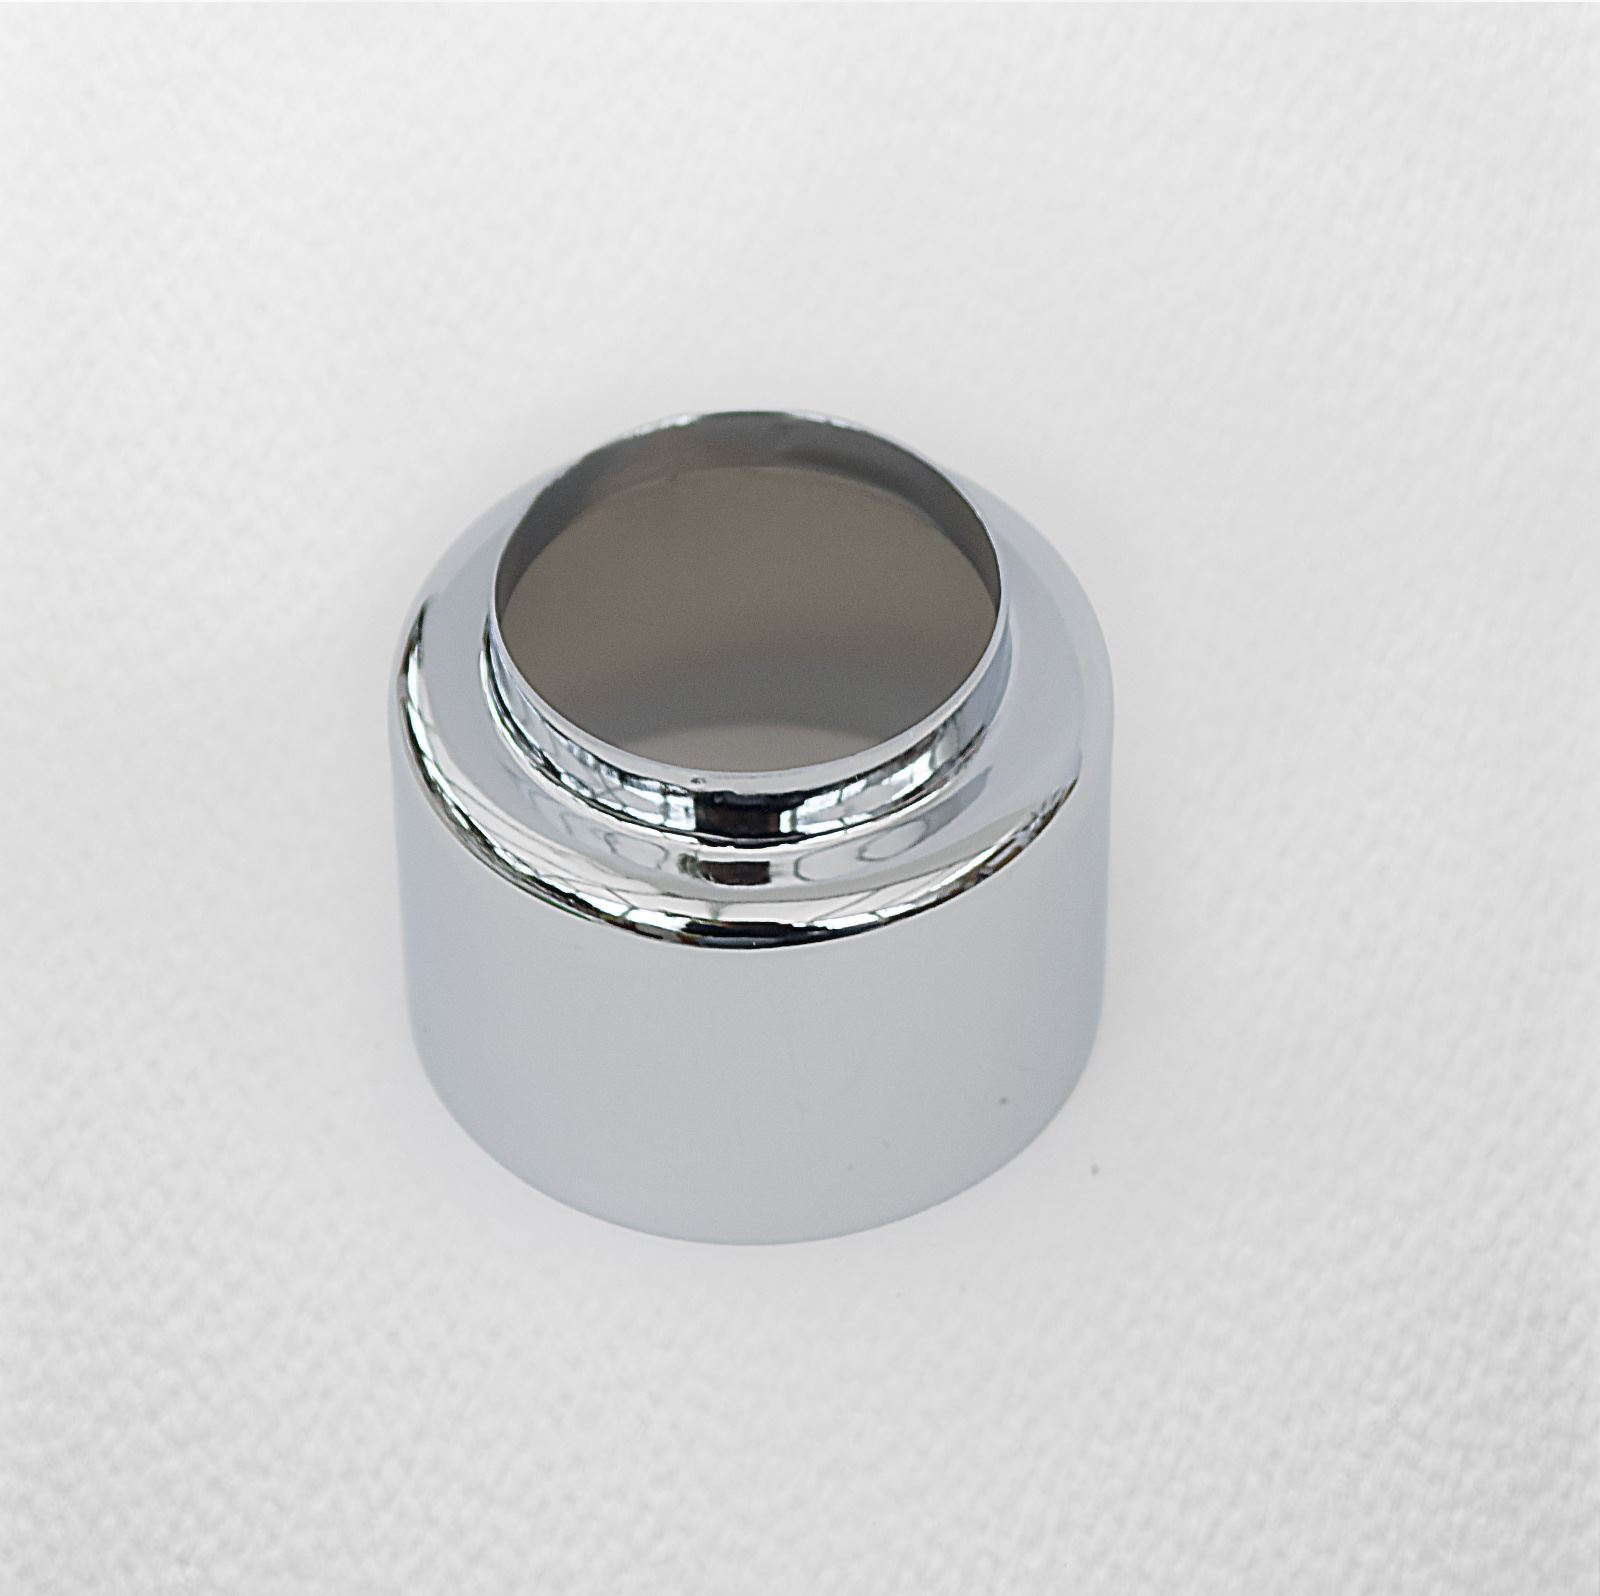 Ideal Standard A954455AA Temperature control handle Red button Chrome